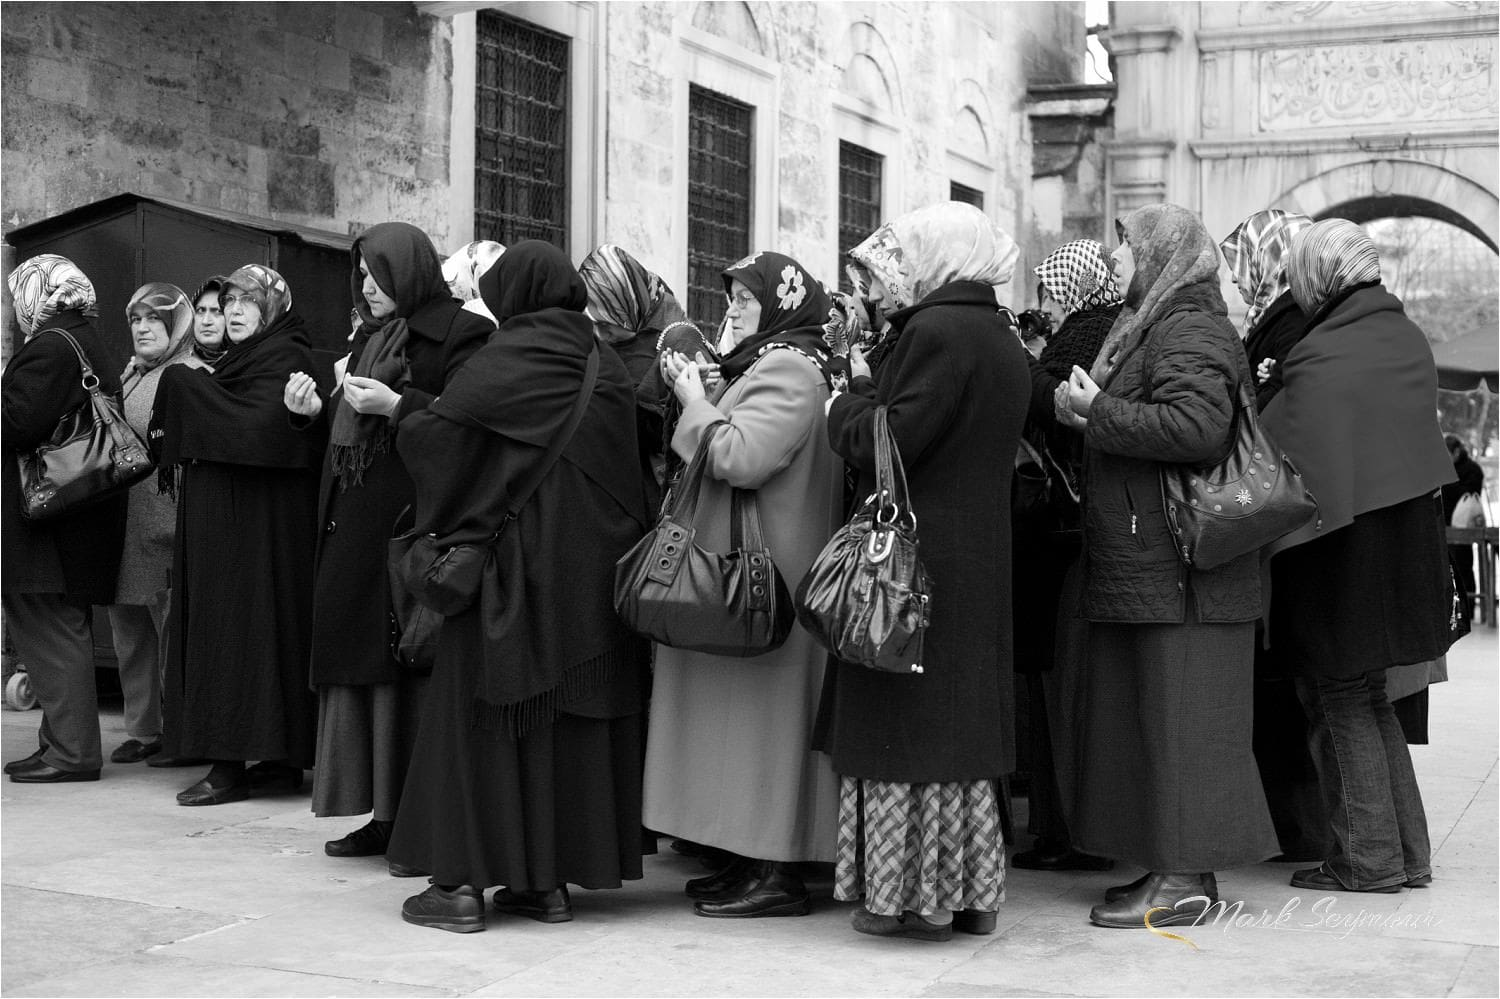 Weomen pray at a Mosque in Istanbul